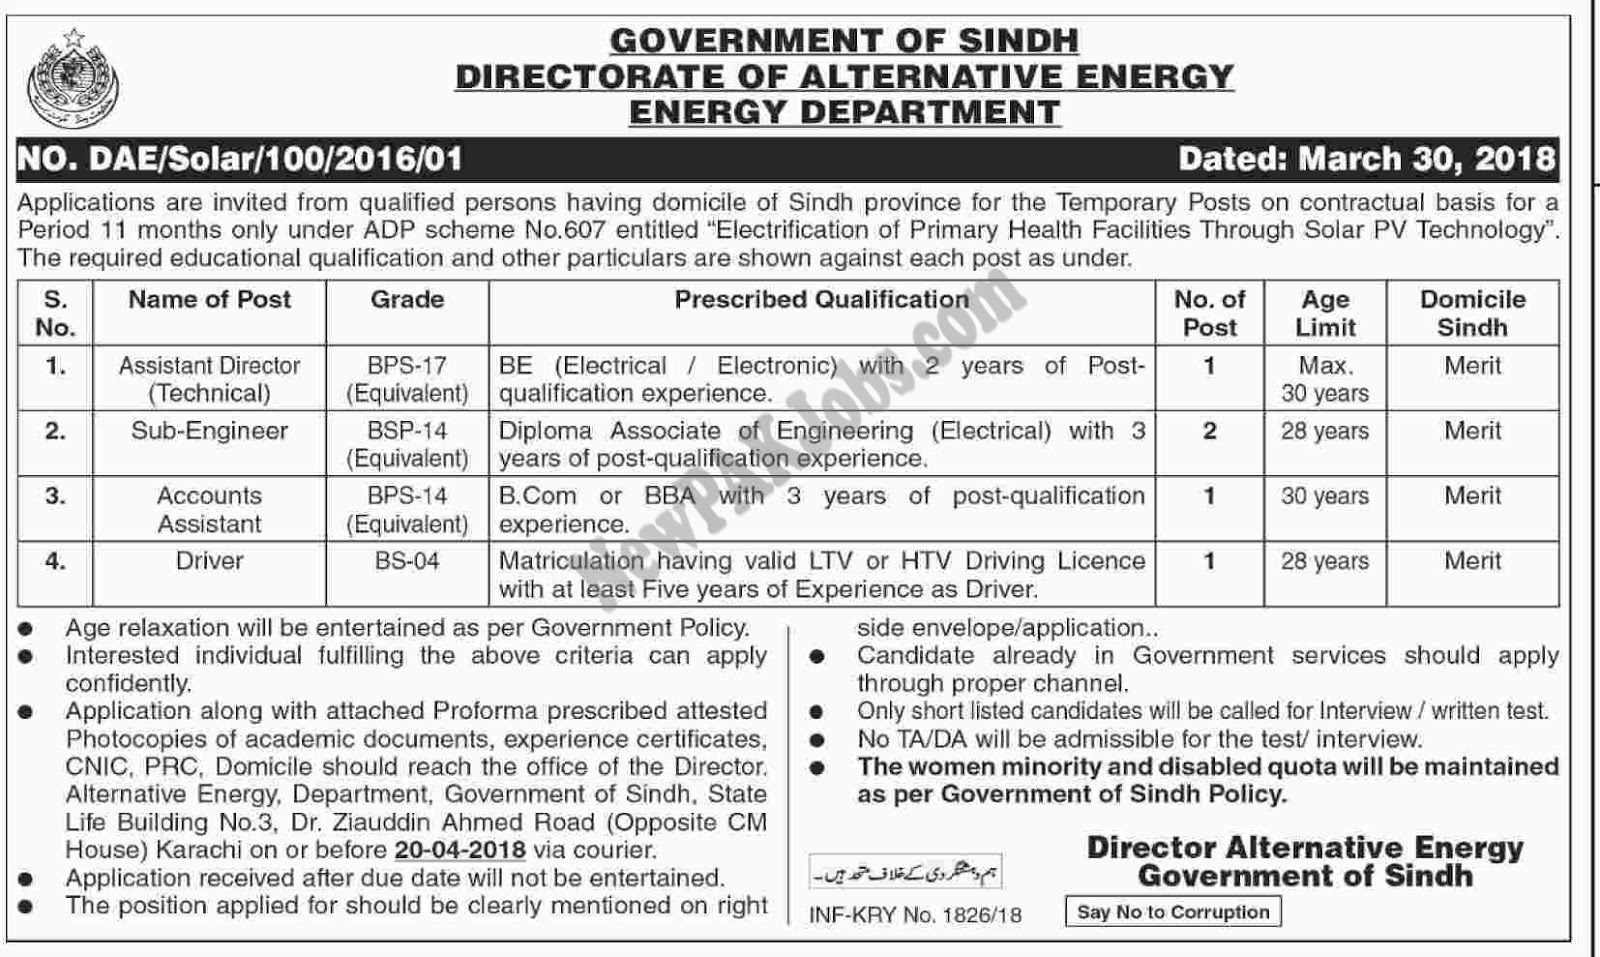 Energy-Department-Goven-of-Sindh